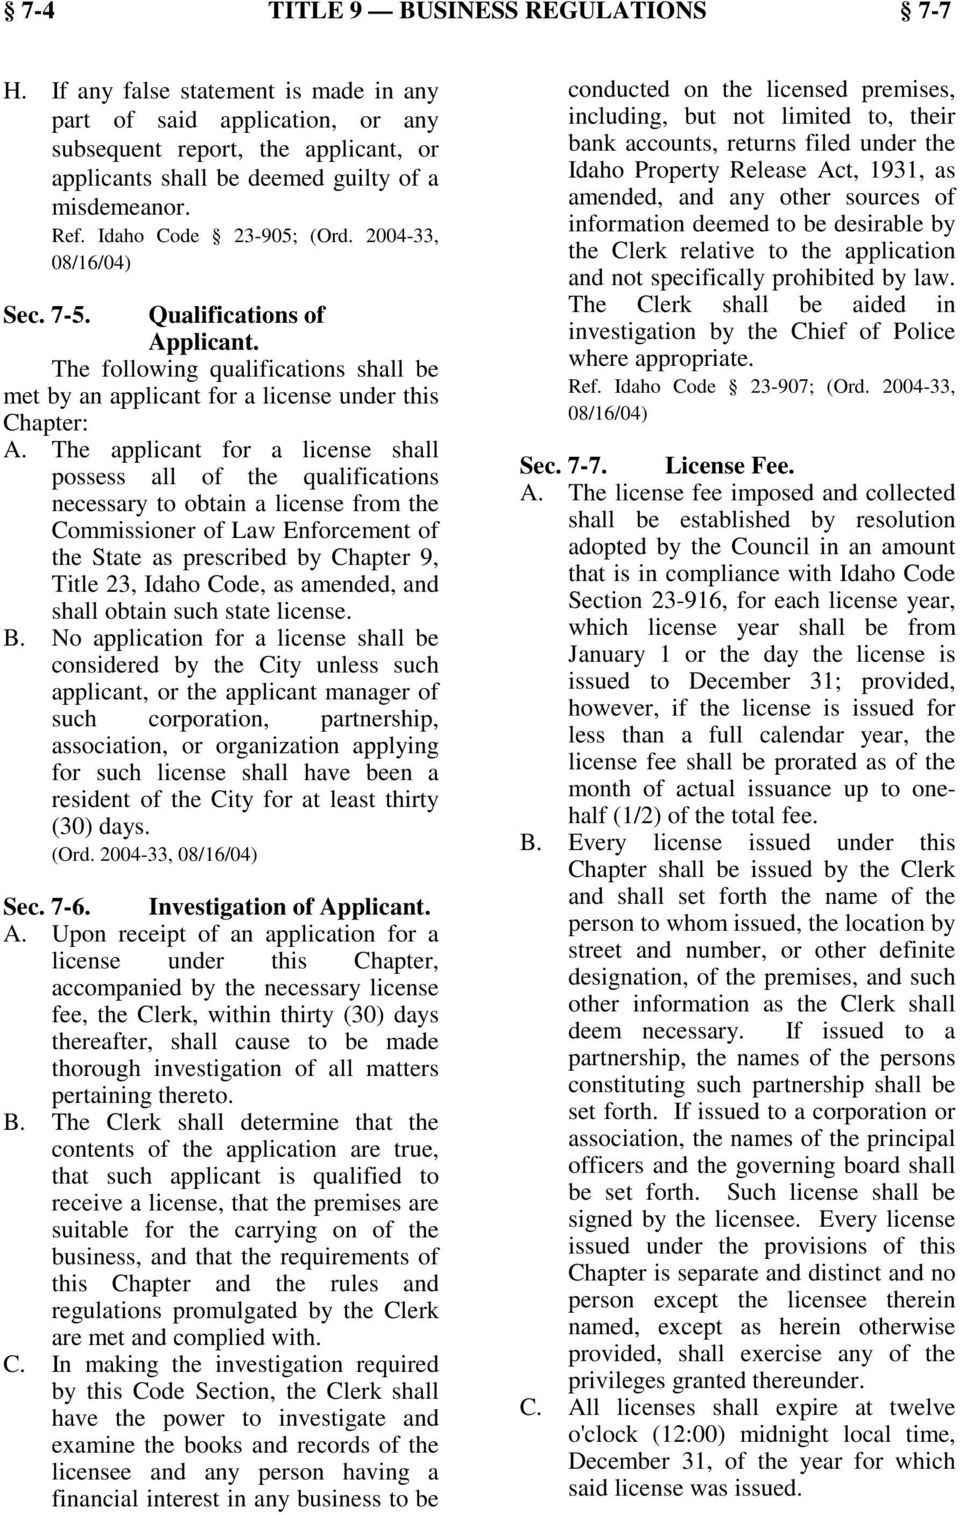 The applicant for a license shall possess all of the qualifications necessary to obtain a license from the Commissioner of Law Enforcement of the State as prescribed by Chapter 9, Title 23, Idaho